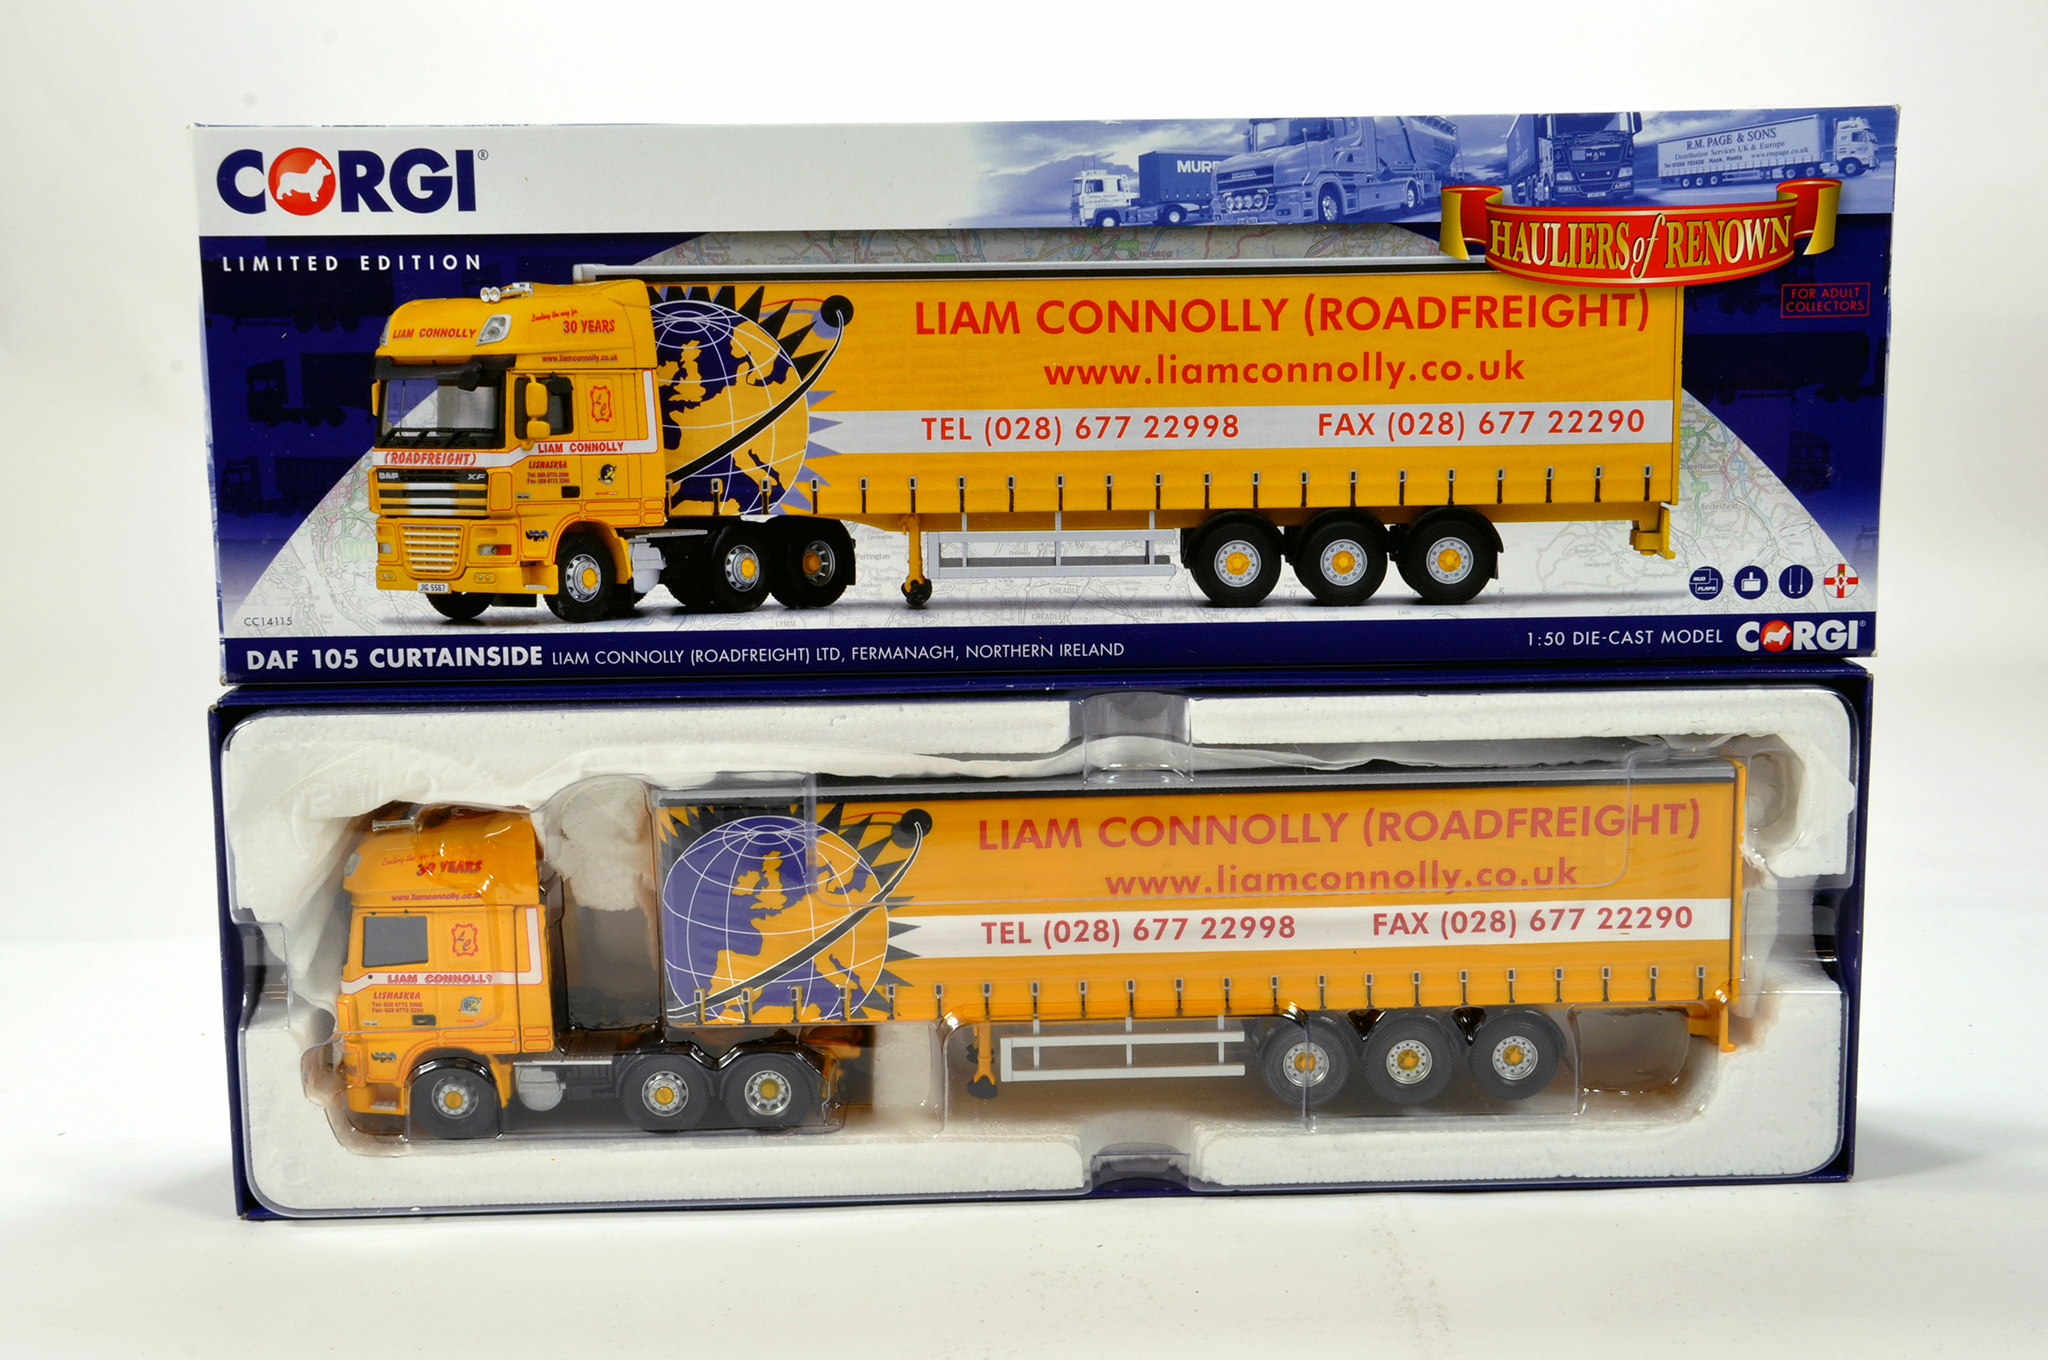 Lot 32 - Corgi 1/50 diecast truck issue comprising No. CC14115 DAF 105 Curtainside in livery of Liam